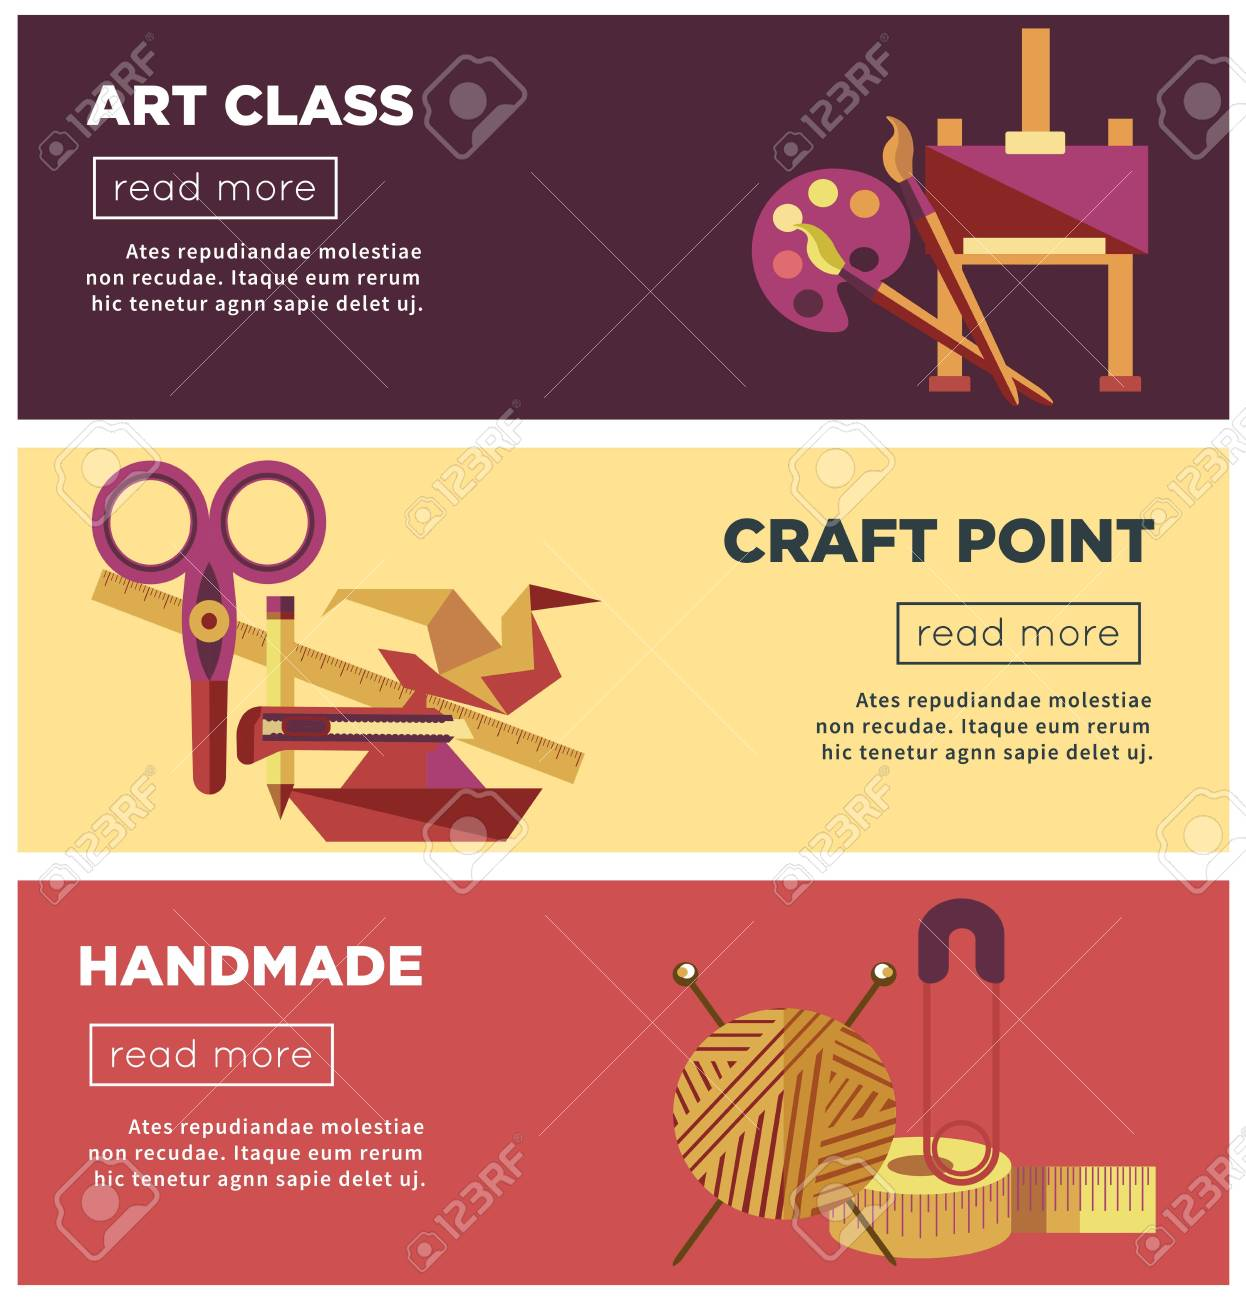 Art Class Craft Point And Handmade Projects Poster Template Royalty